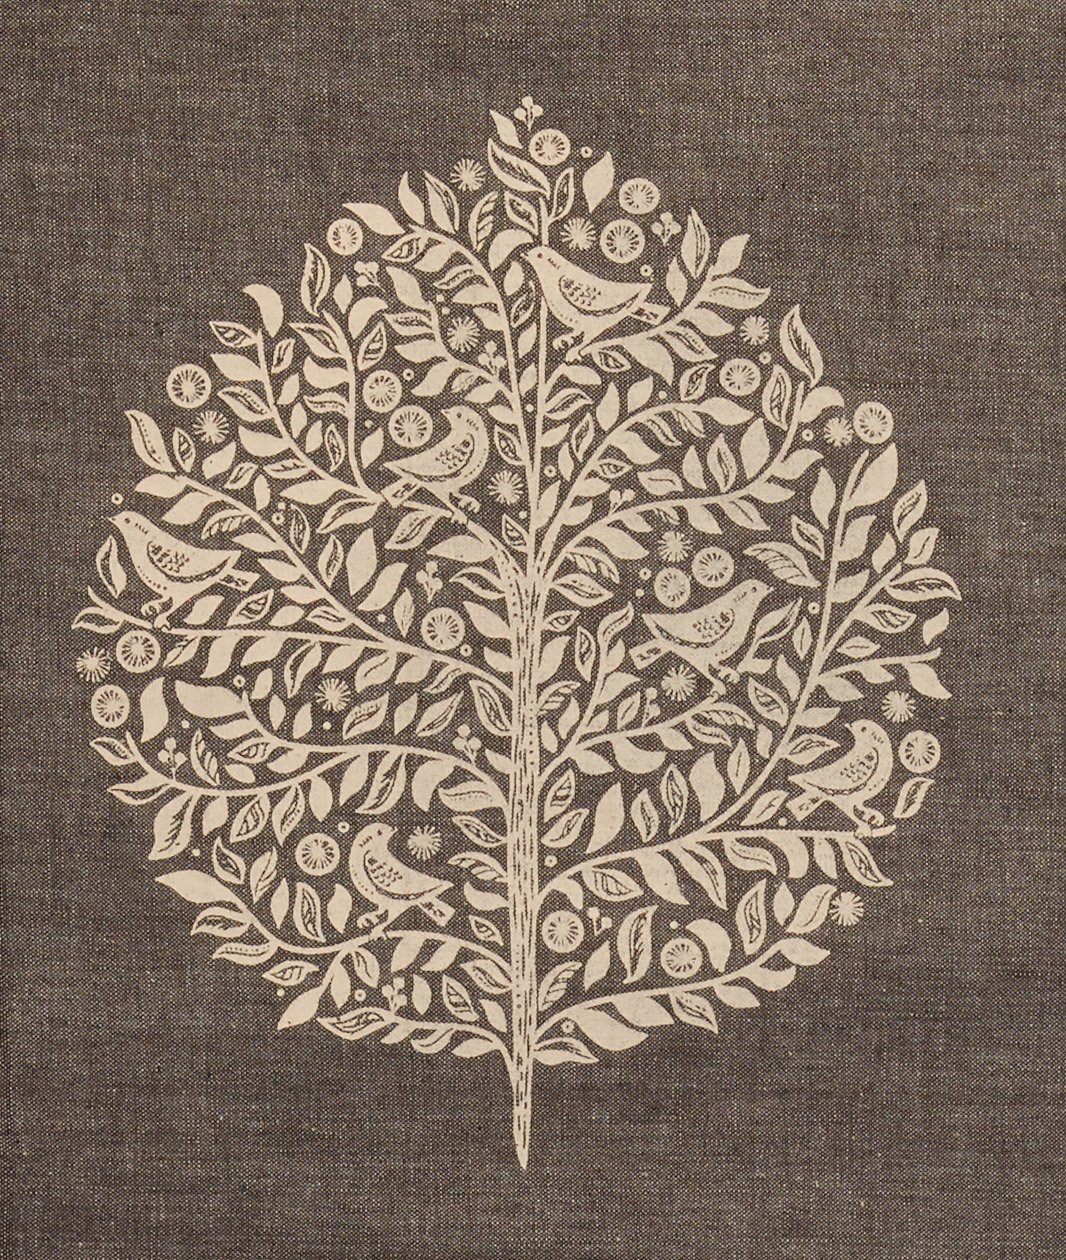 Elmwood Grey Print 1745039 Now Designs 60 by 120 inch Cotton Tablecloth